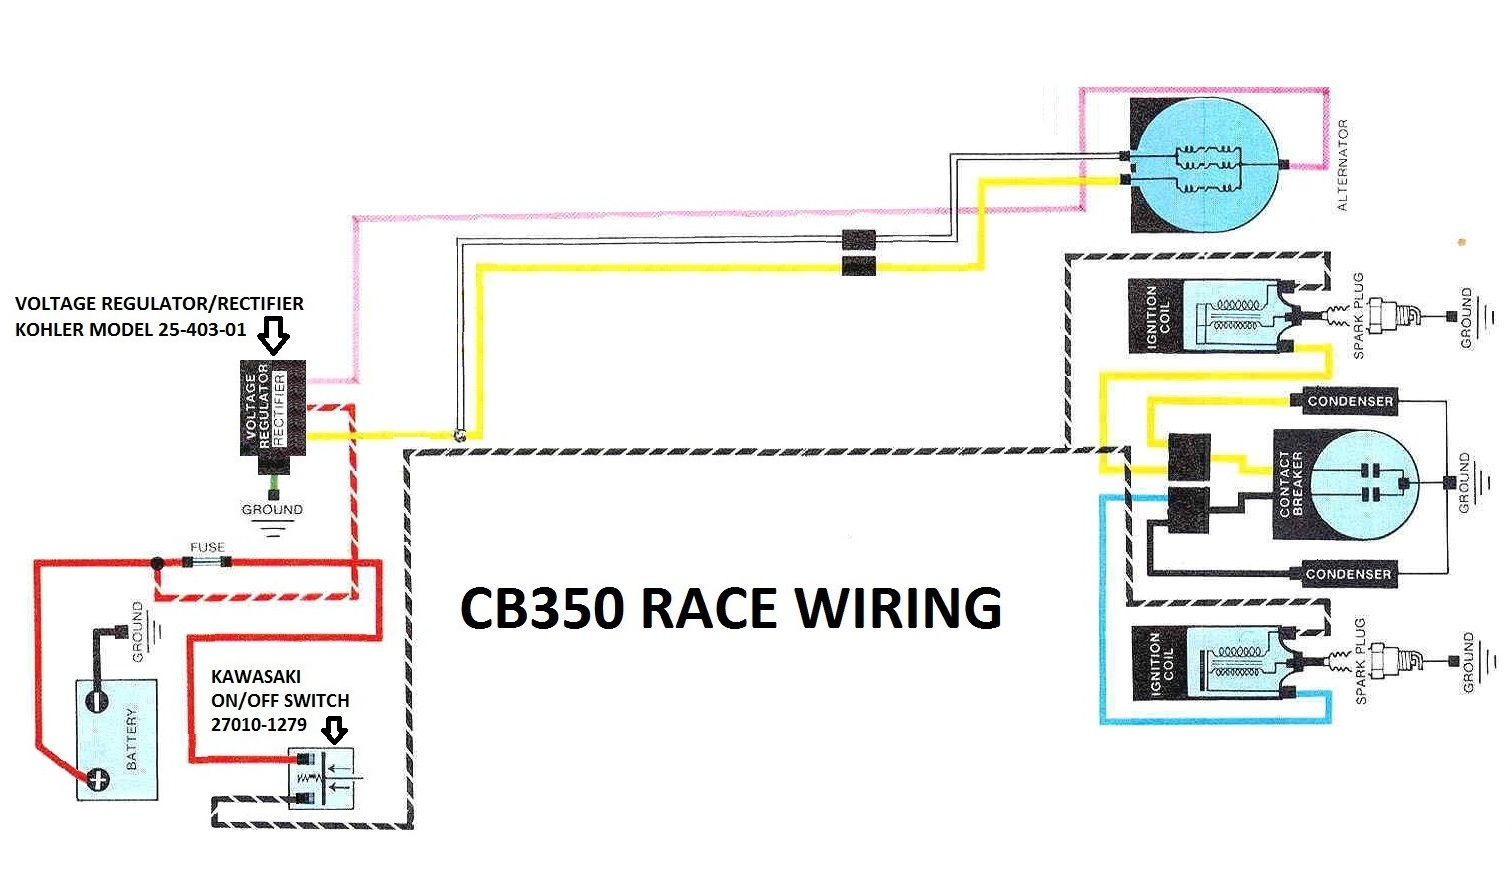 cb350 race wiring a question about voltage regulator wiring rh hondatwins  net Antenna Wiring Diagram Honda